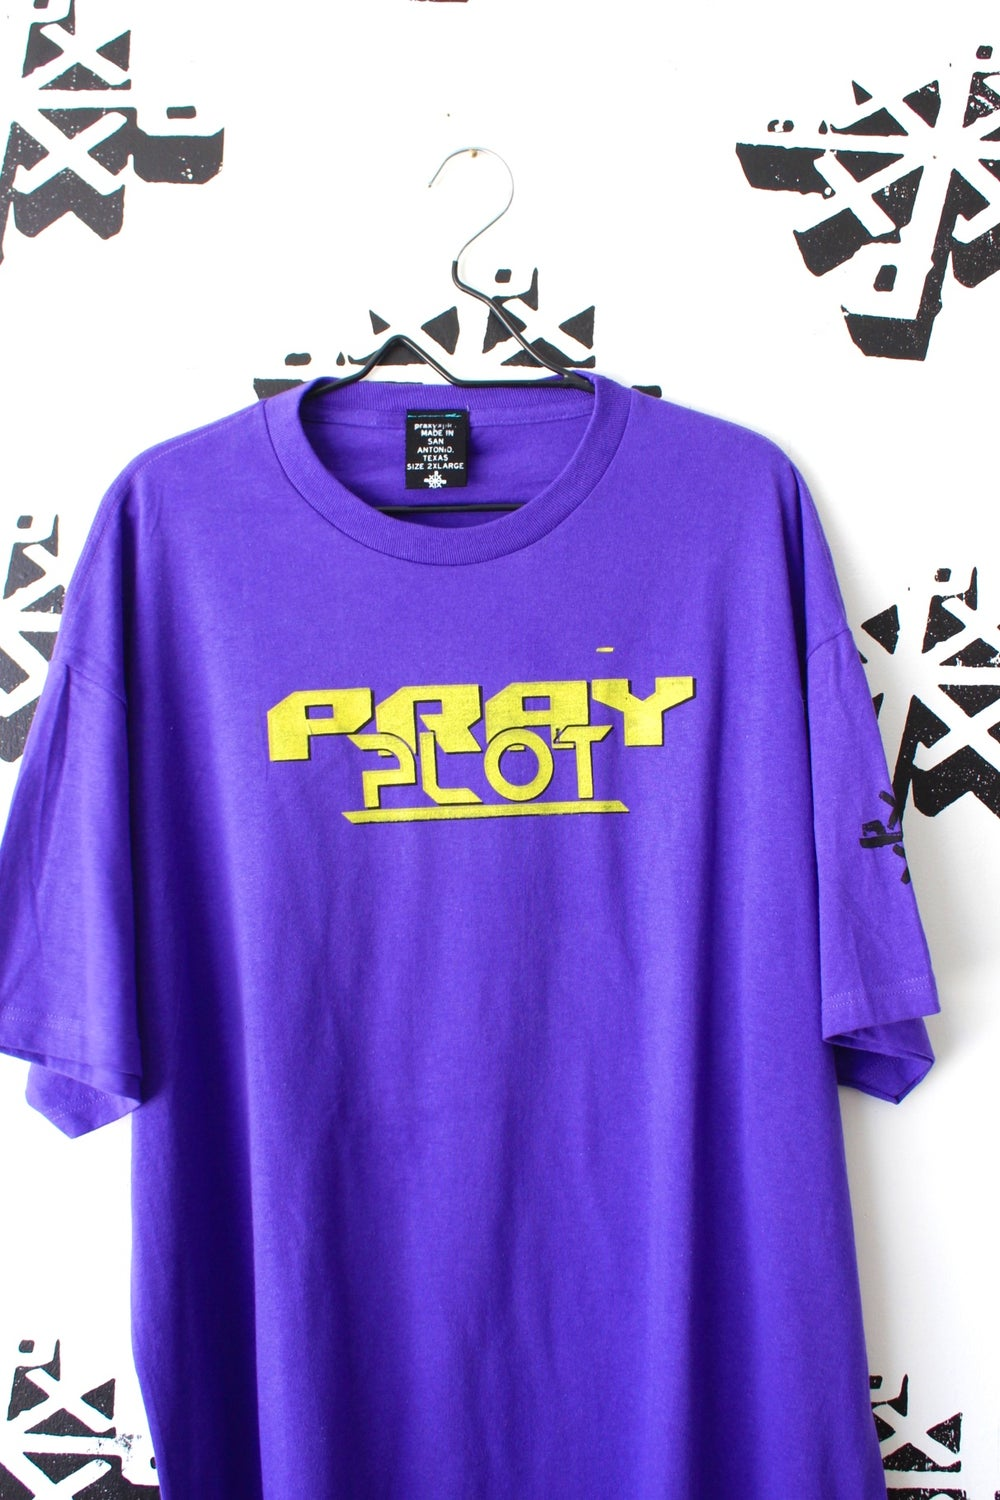 really all over tee in purple